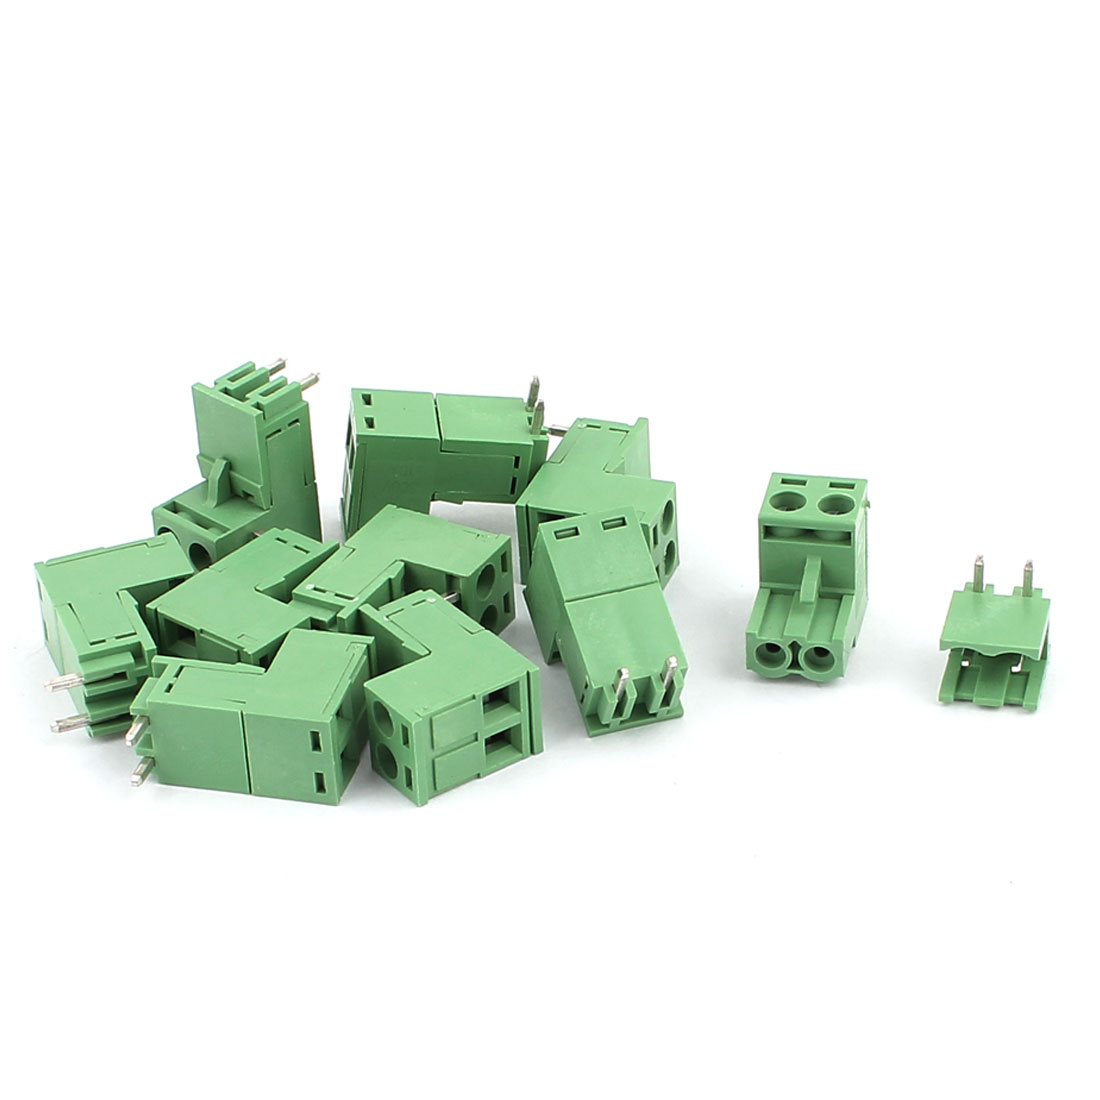 10Pcs AC 300V 10A 2P Pins PCB Screw Terminal Block Connector 5.08mm Pitch Green